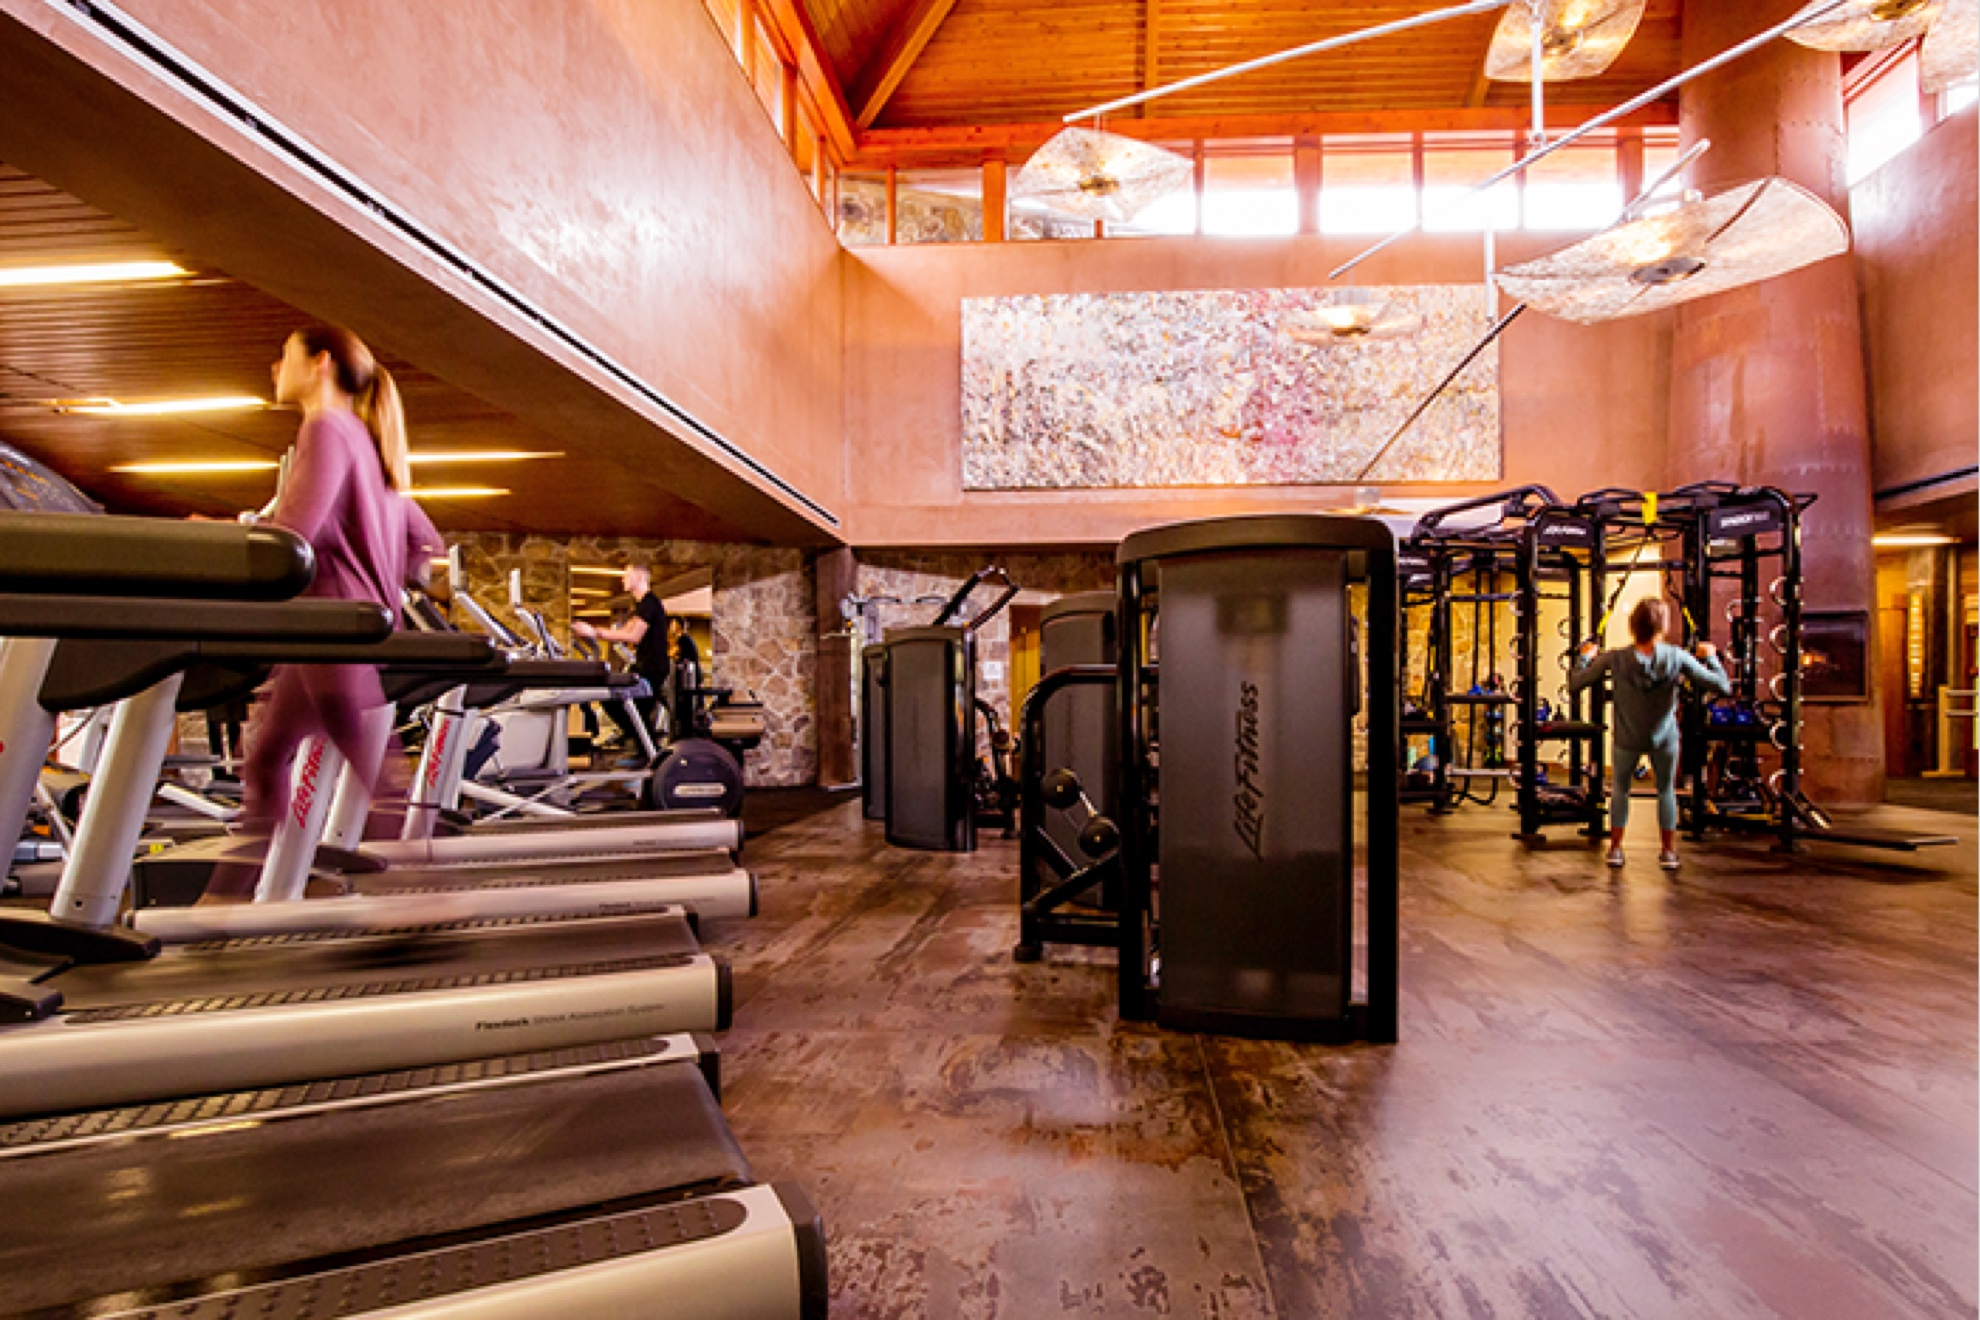 an action shot of a fitness center. There are treadmills lining the left side of the gym. There is a woman walking on one of the treadmills. There are weight machines on the right side of the room with a man using them